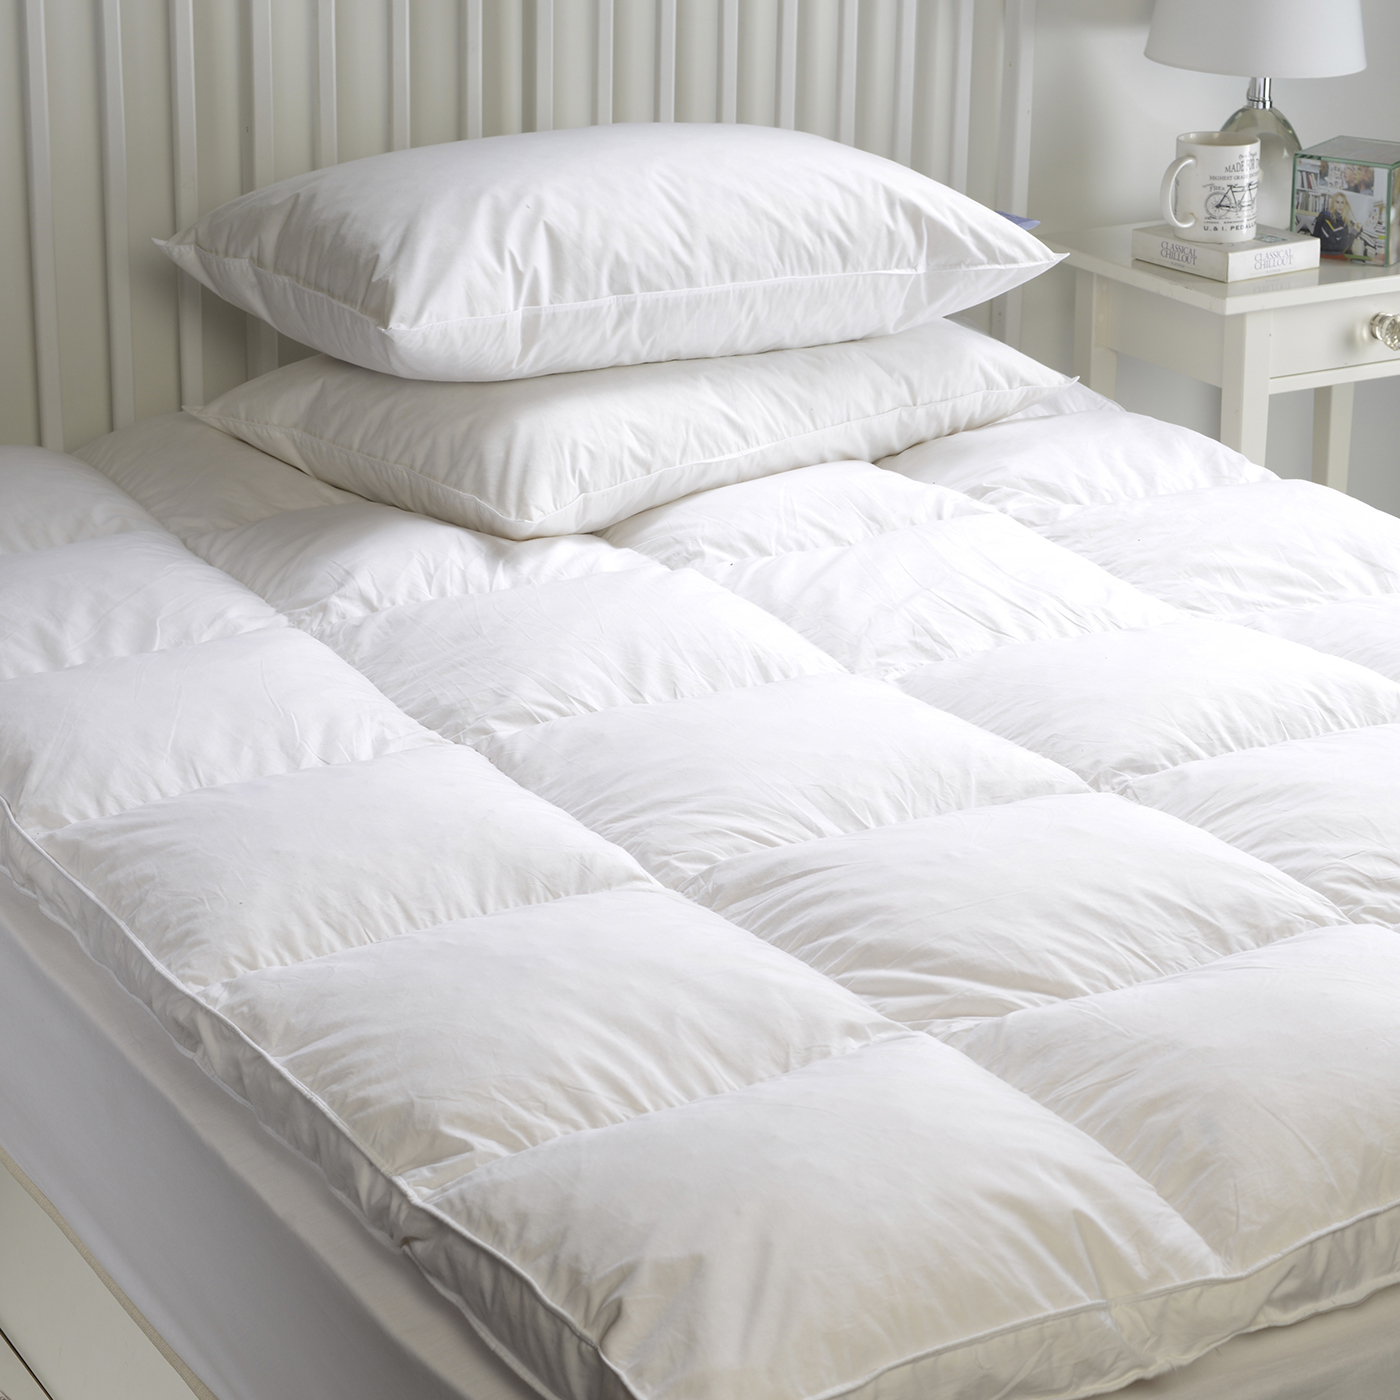 Goose Feather & Down Mattress Topper Enhancer Cover